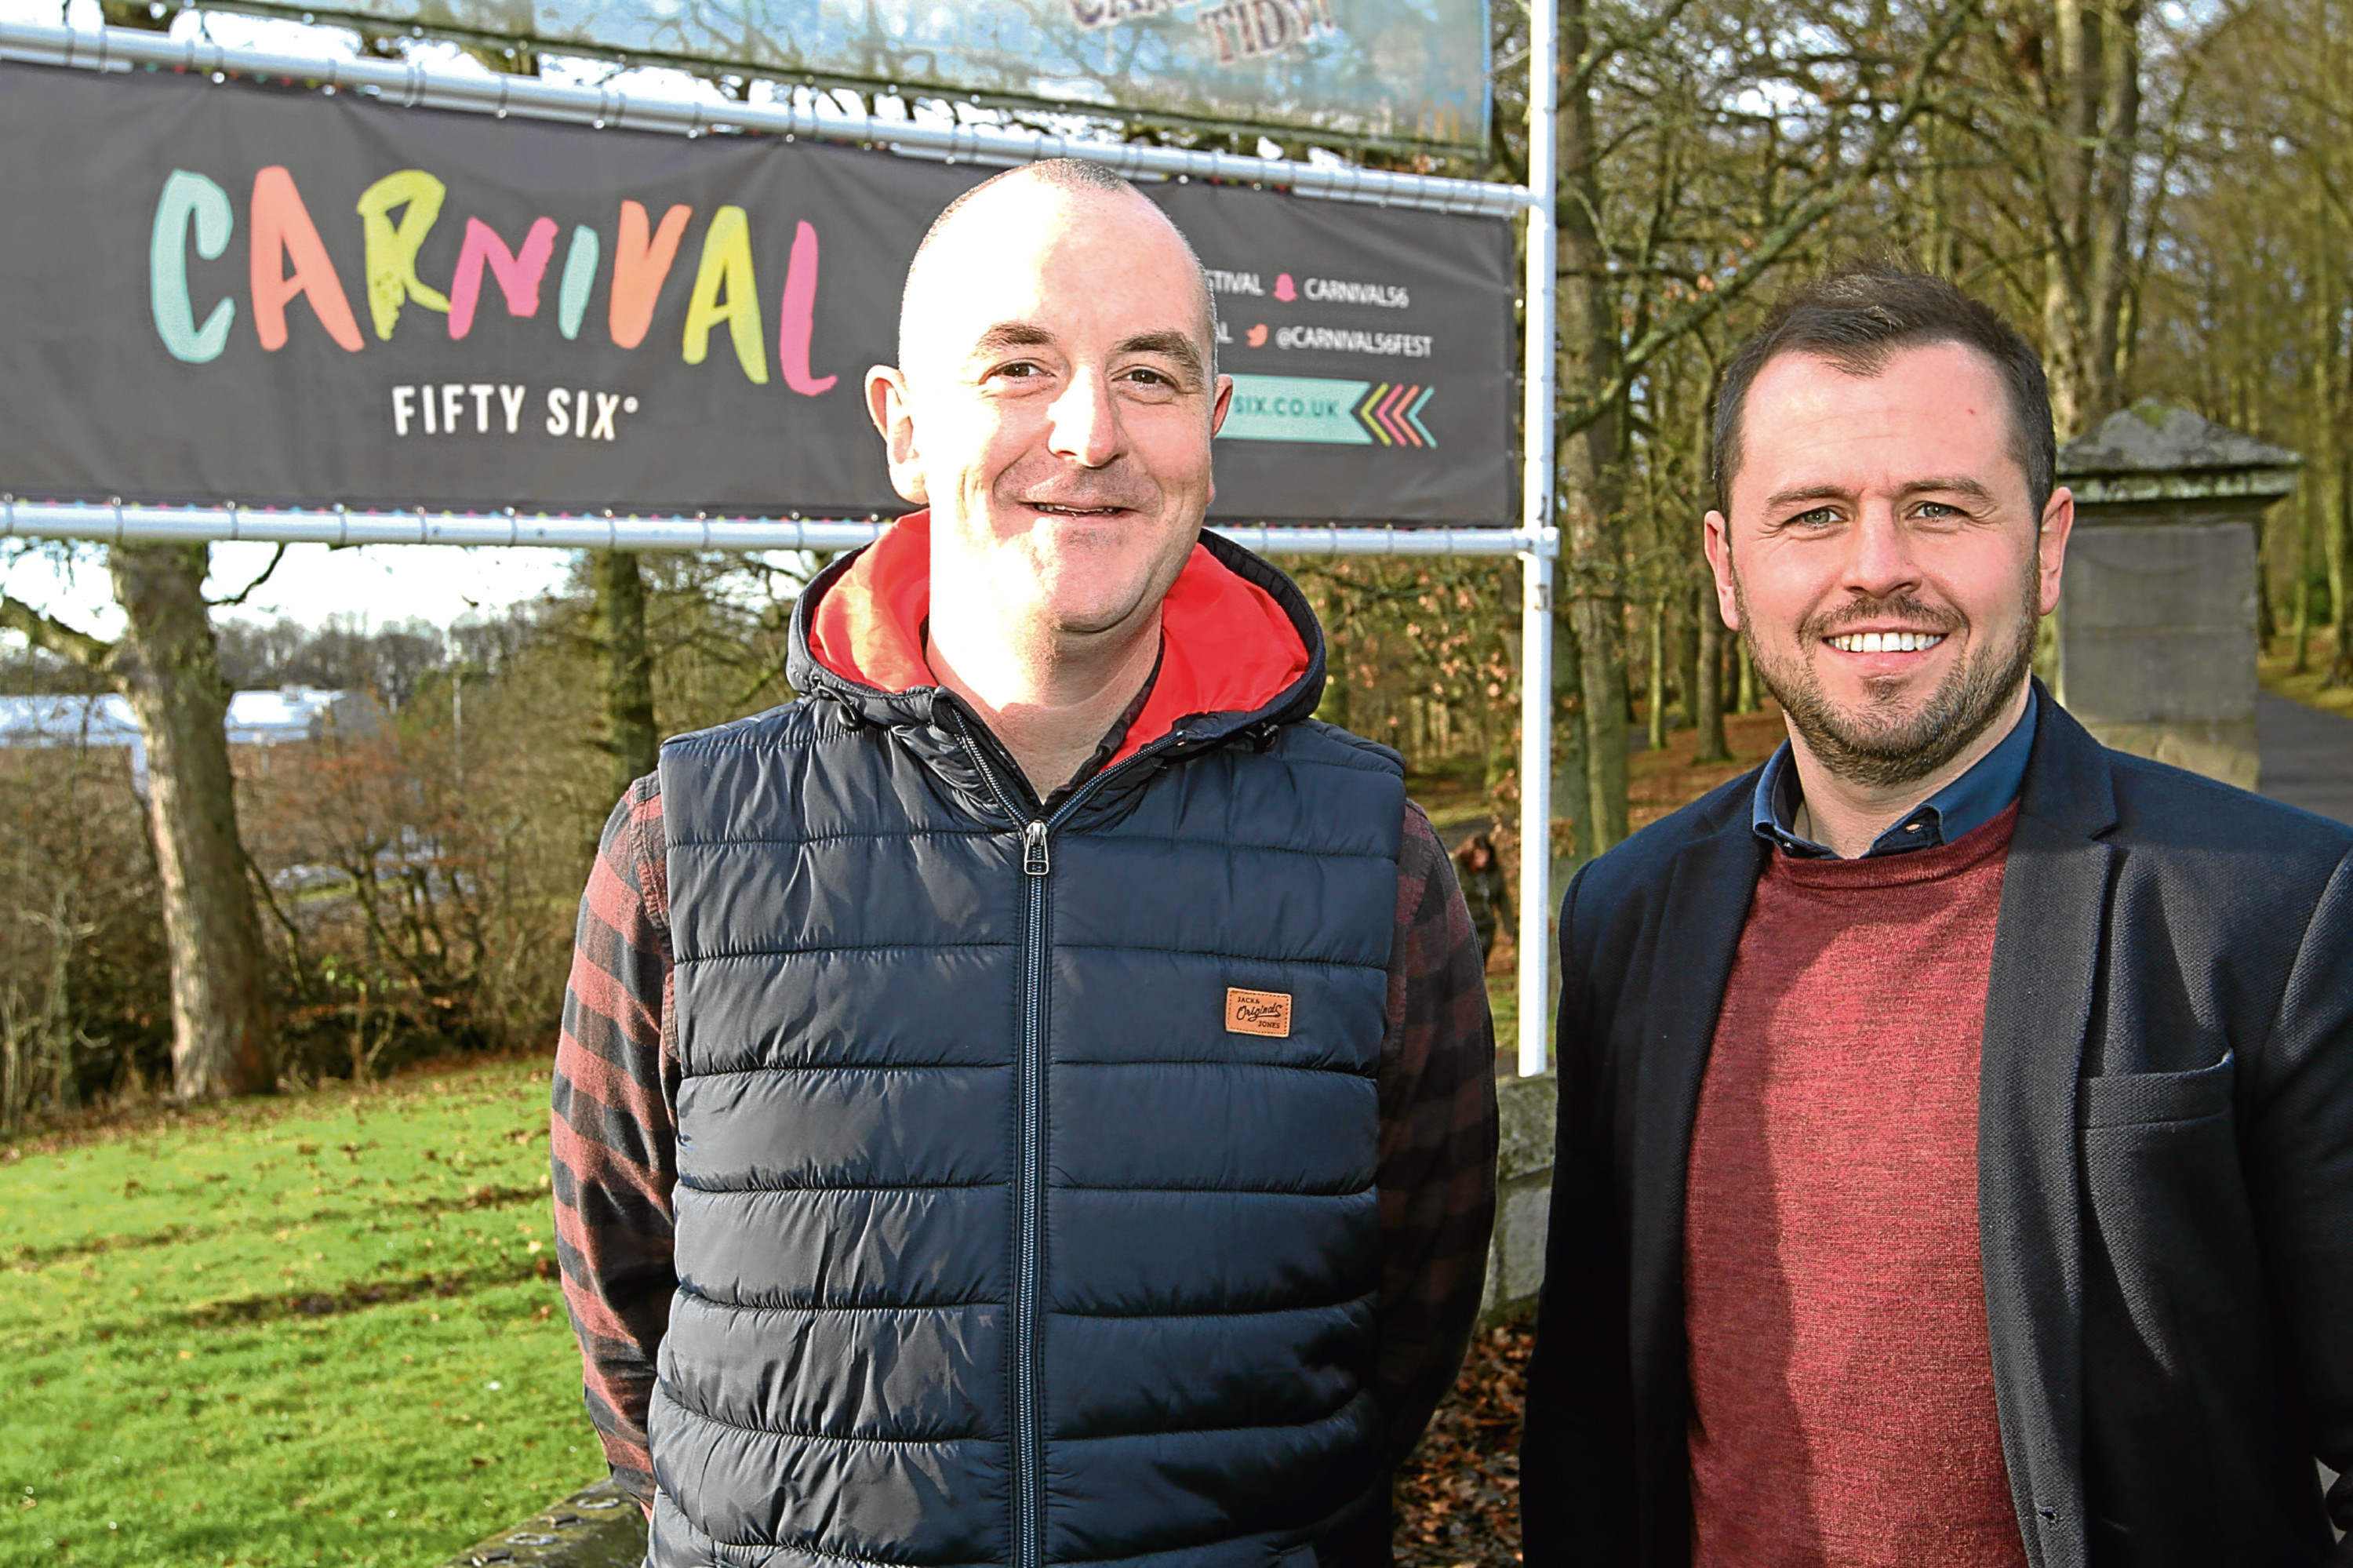 Carnival 56 event manager Steve Reynolds and founder Craig Blyth